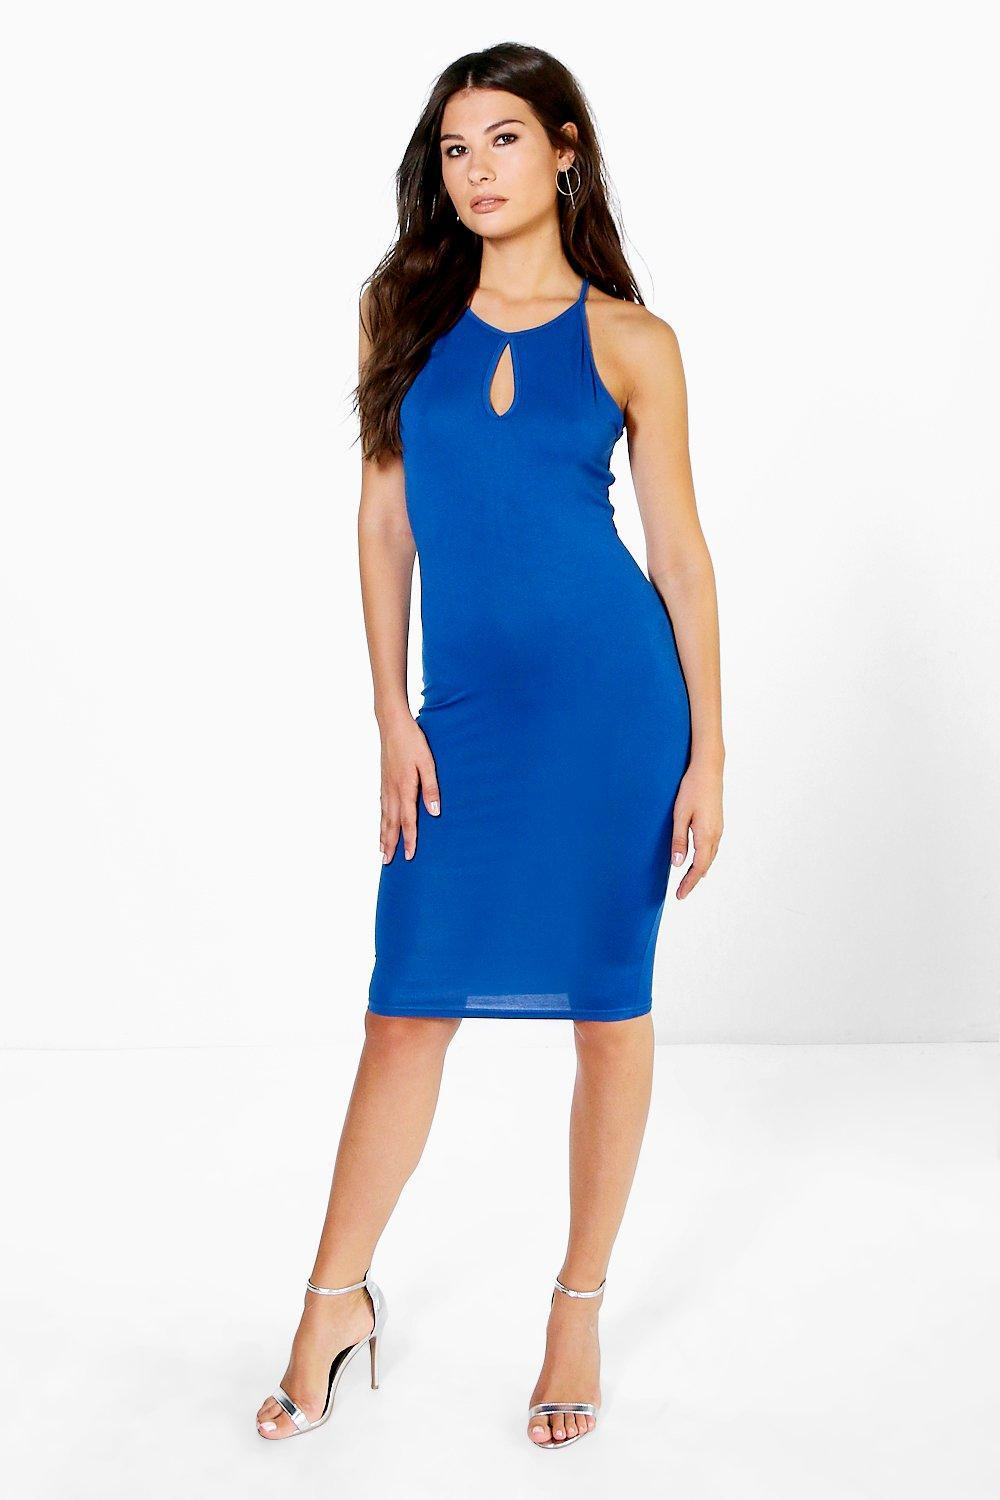 Racer Neck Keyhole Mini Dress Cobalt - fit: tight; pattern: plain; sleeve style: sleeveless; style: bodycon; predominant colour: royal blue; occasions: evening; length: on the knee; neckline: peep hole neckline; fibres: polyester/polyamide - stretch; sleeve length: sleeveless; texture group: jersey - clingy; pattern type: fabric; season: a/w 2016; wardrobe: event